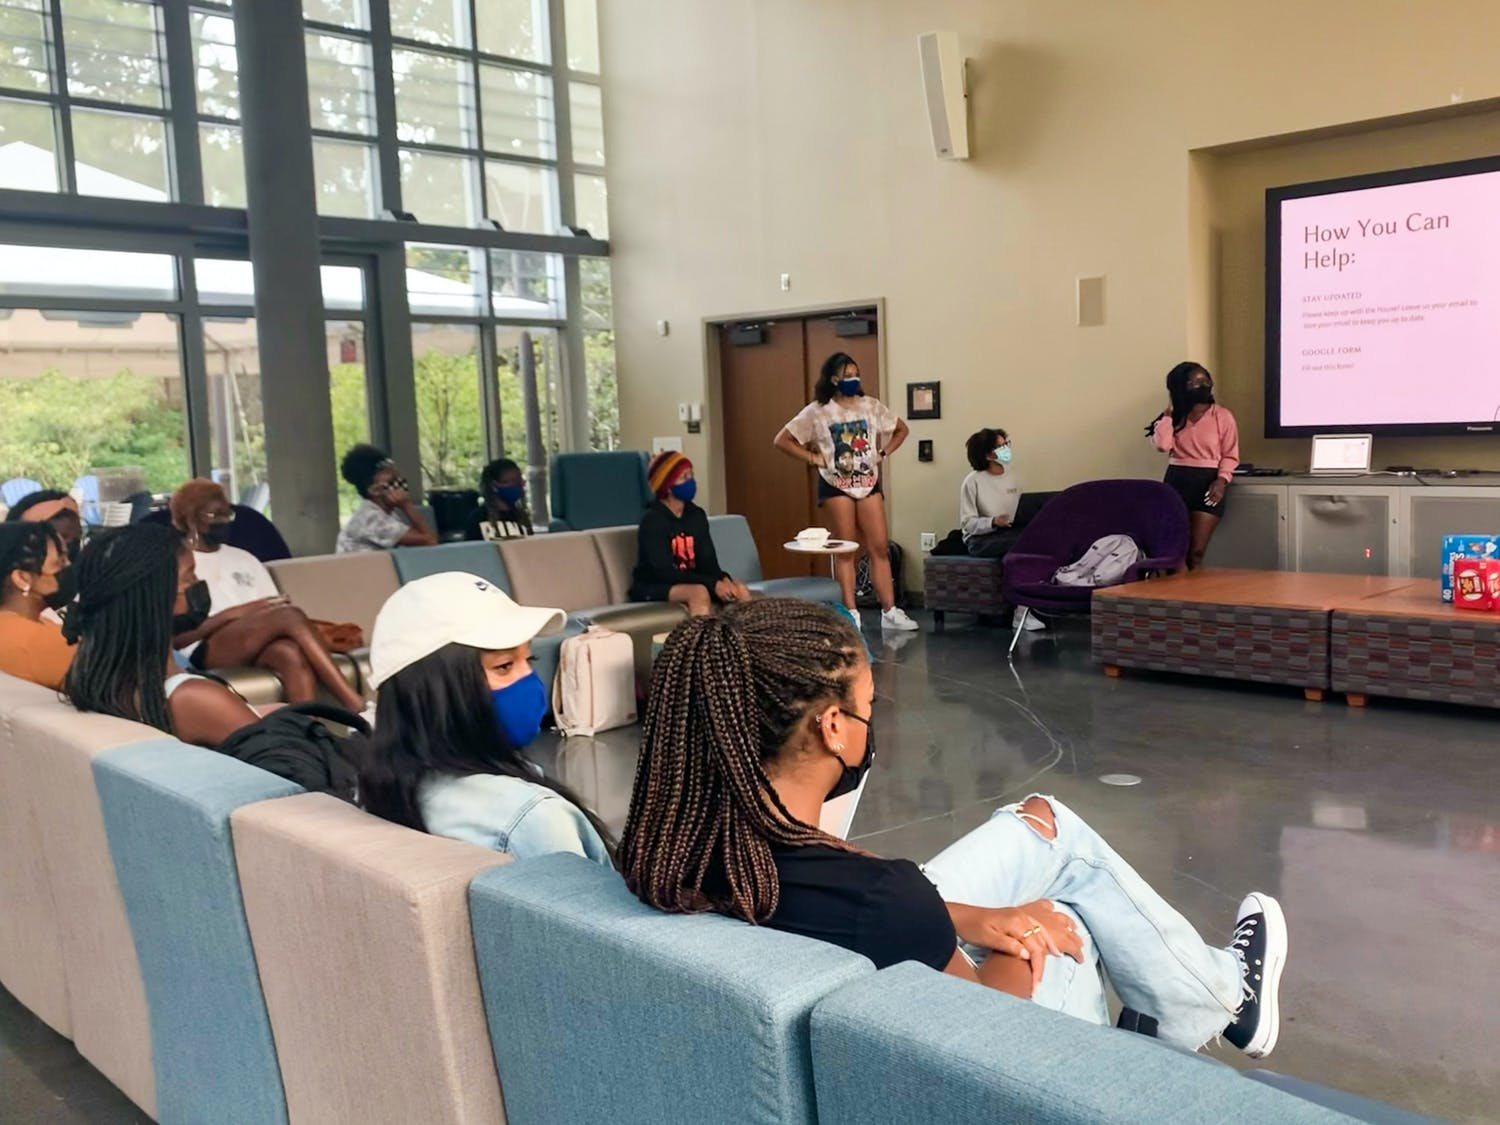 """At a recent event, student leaders of the Mitchell-White House gave a presentation that was broken into four sections: the history of MWH, what they were promised this year, what has been happening instead and a """"we want your ideas"""" slide to foster open discussion."""